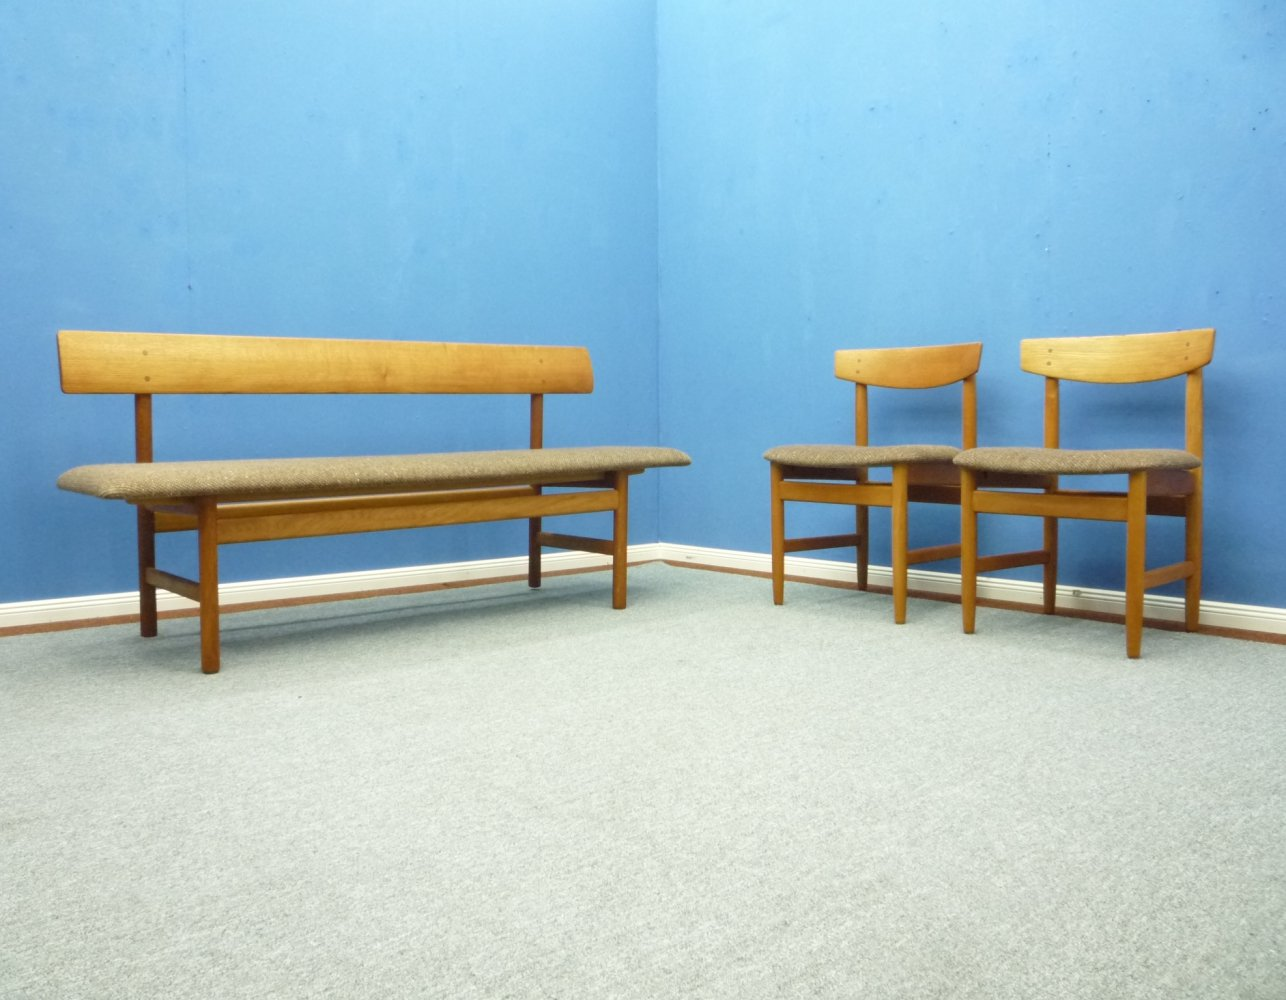 Danish 3171 Bench & Chairs by Borge Mogensen, 1960s